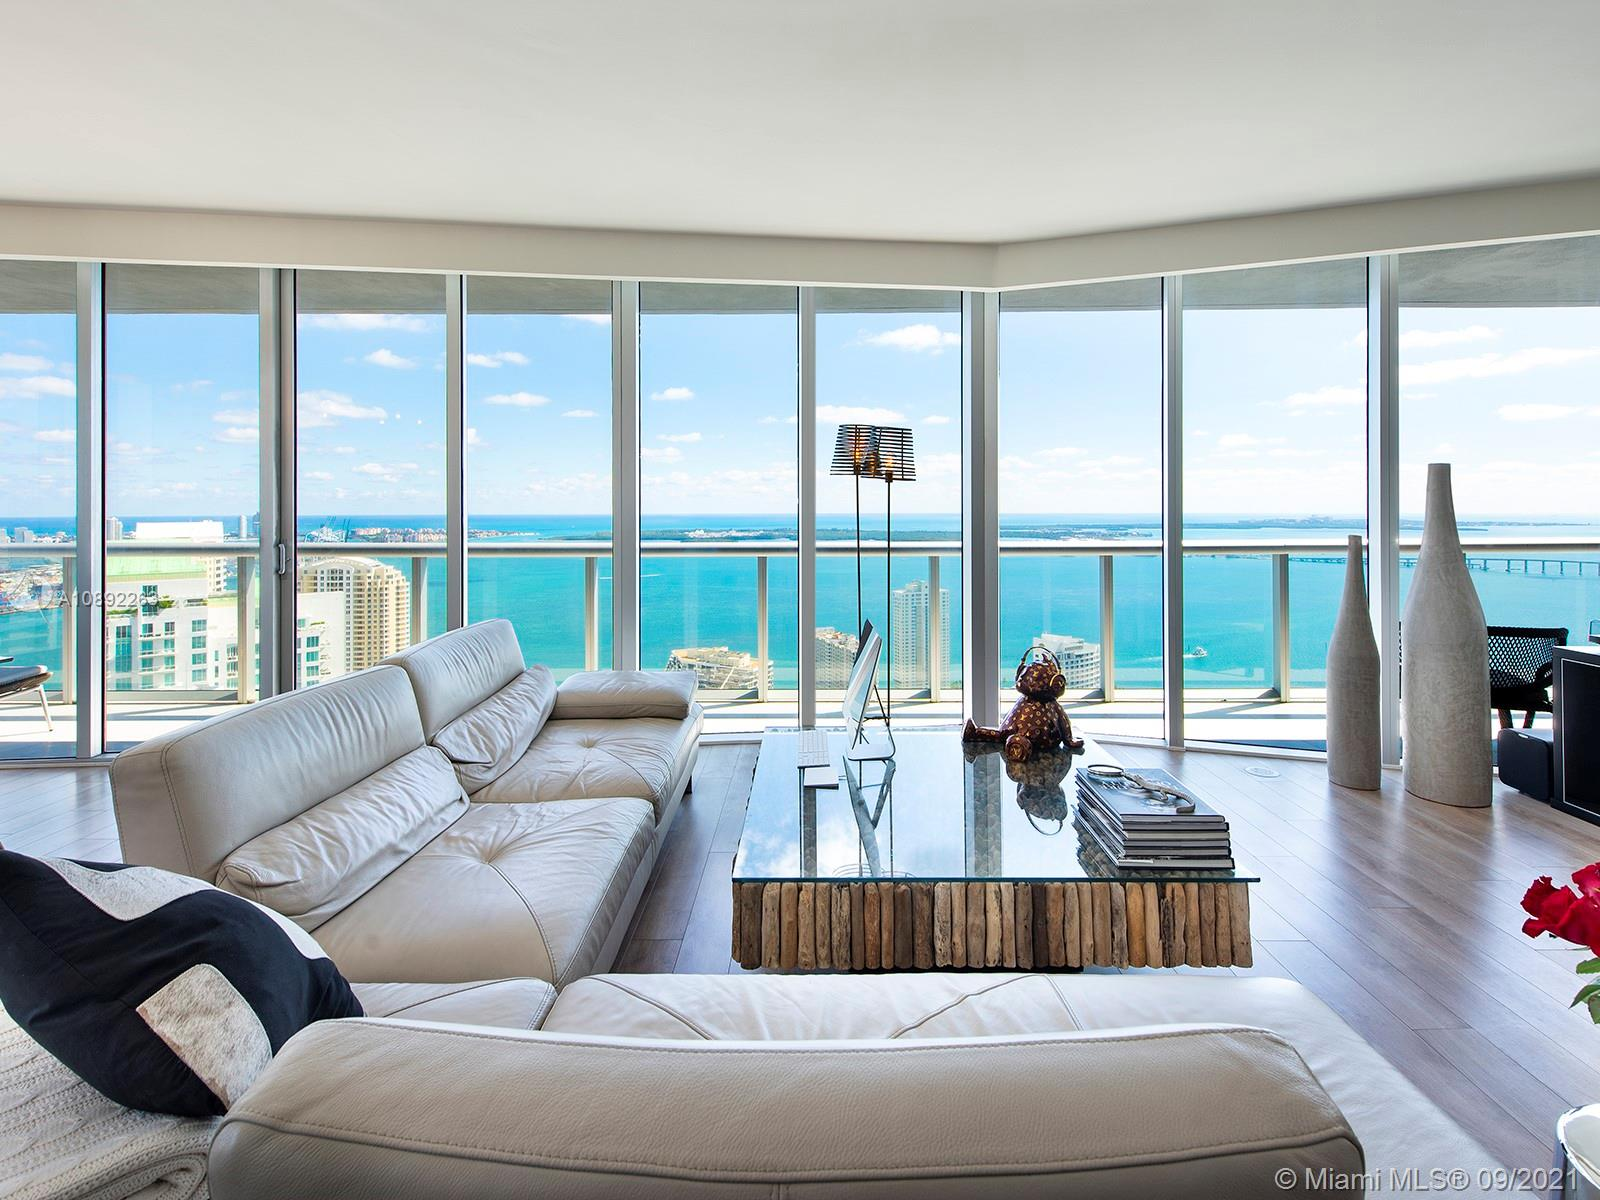 Luxurious residence on the 49th floor with unobstructed breathtaking views of the Ocean, Biscayne Bay and the Miami skyline.an upgraded apartment, such as floors, walls, kitchen This 3 bed 2.5 bath corner unit is located in the Icon Brickell,  a  condo complex by famed Philippe Starck. Building include top of the line amenities like resort-style pool, state of the art fitness center, spa, spinning room, Pilates room, theater, billiard room, lounge areas, 24hr concierge, valet, security and much more.